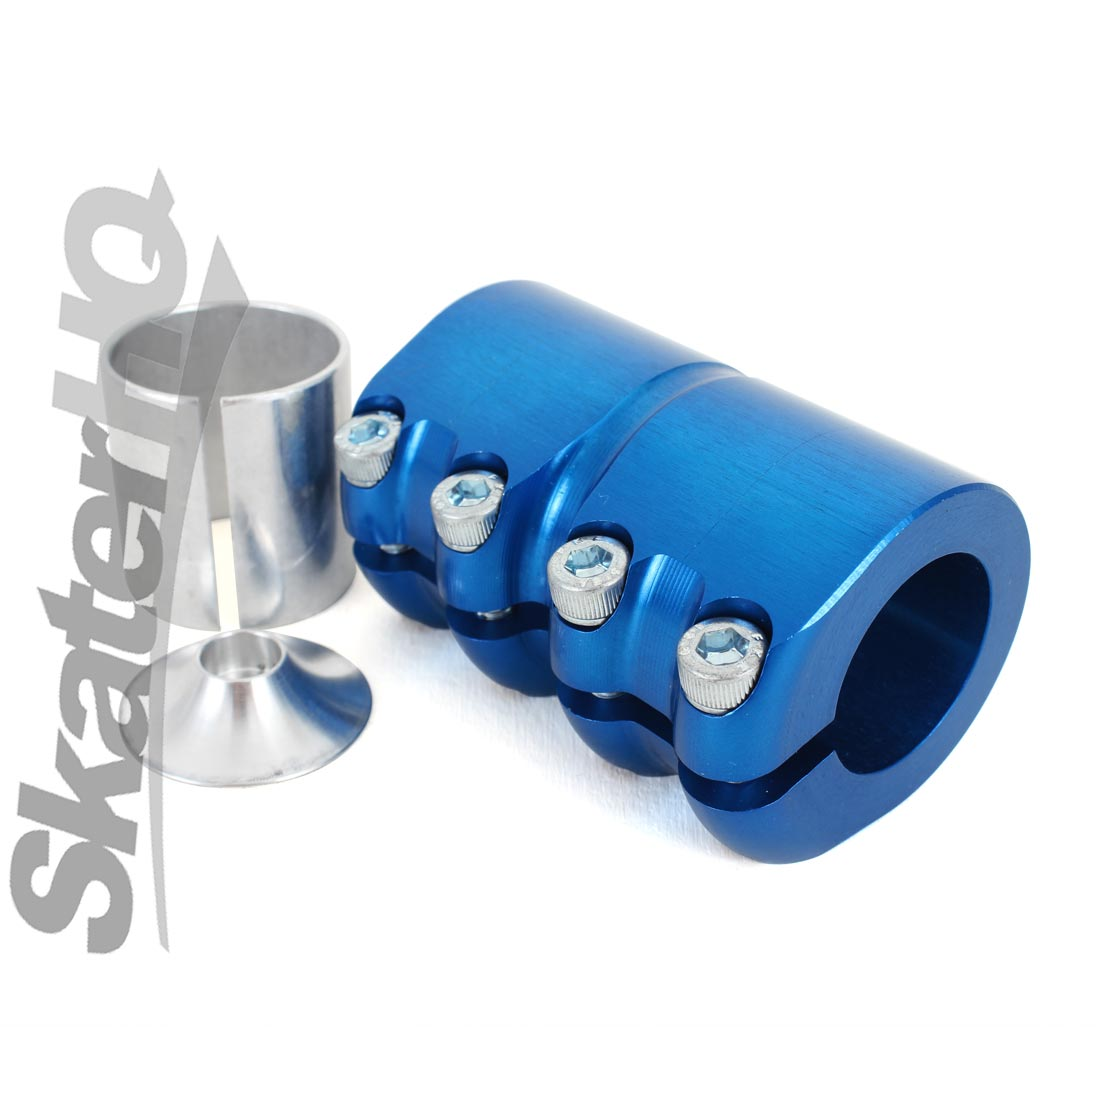 Apex Pro SCS V3 Quad Clamp - Blue